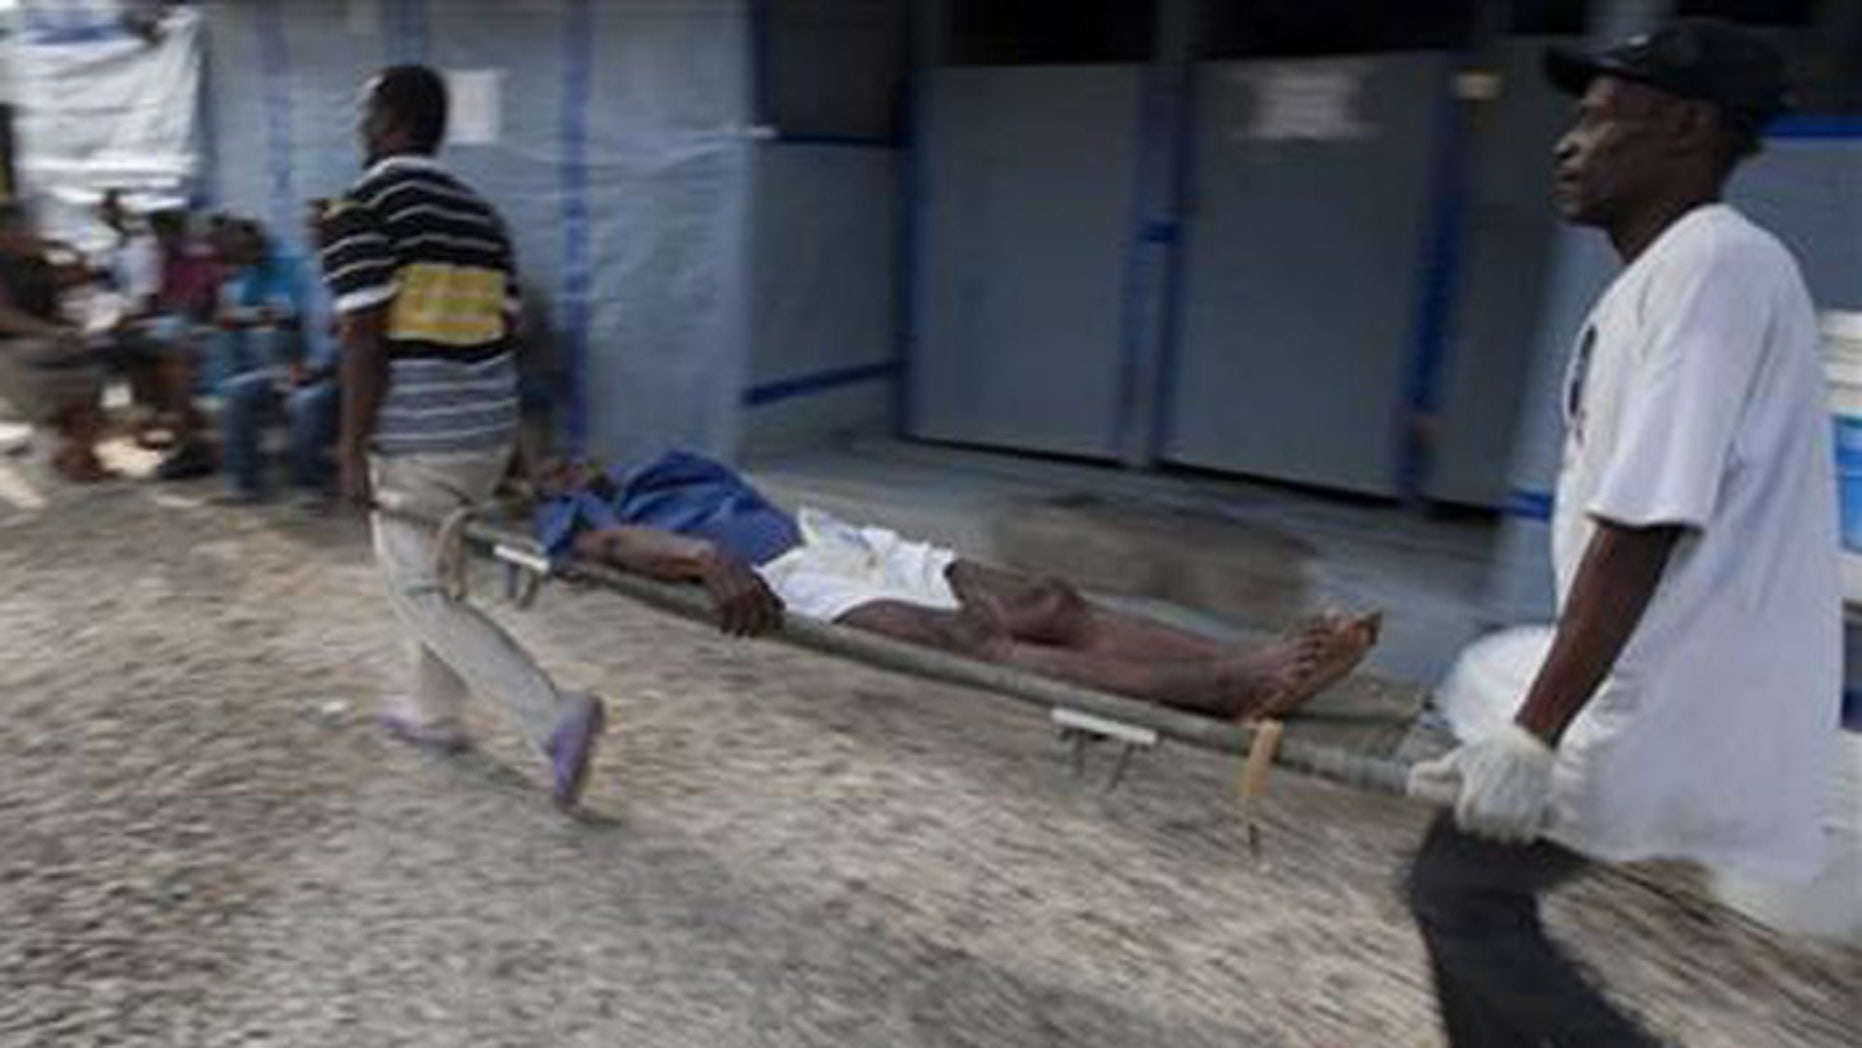 The ongoing cholera outbreak in Haiti has killed more than 8,000 and sickened hundreds of thousands. (AP)